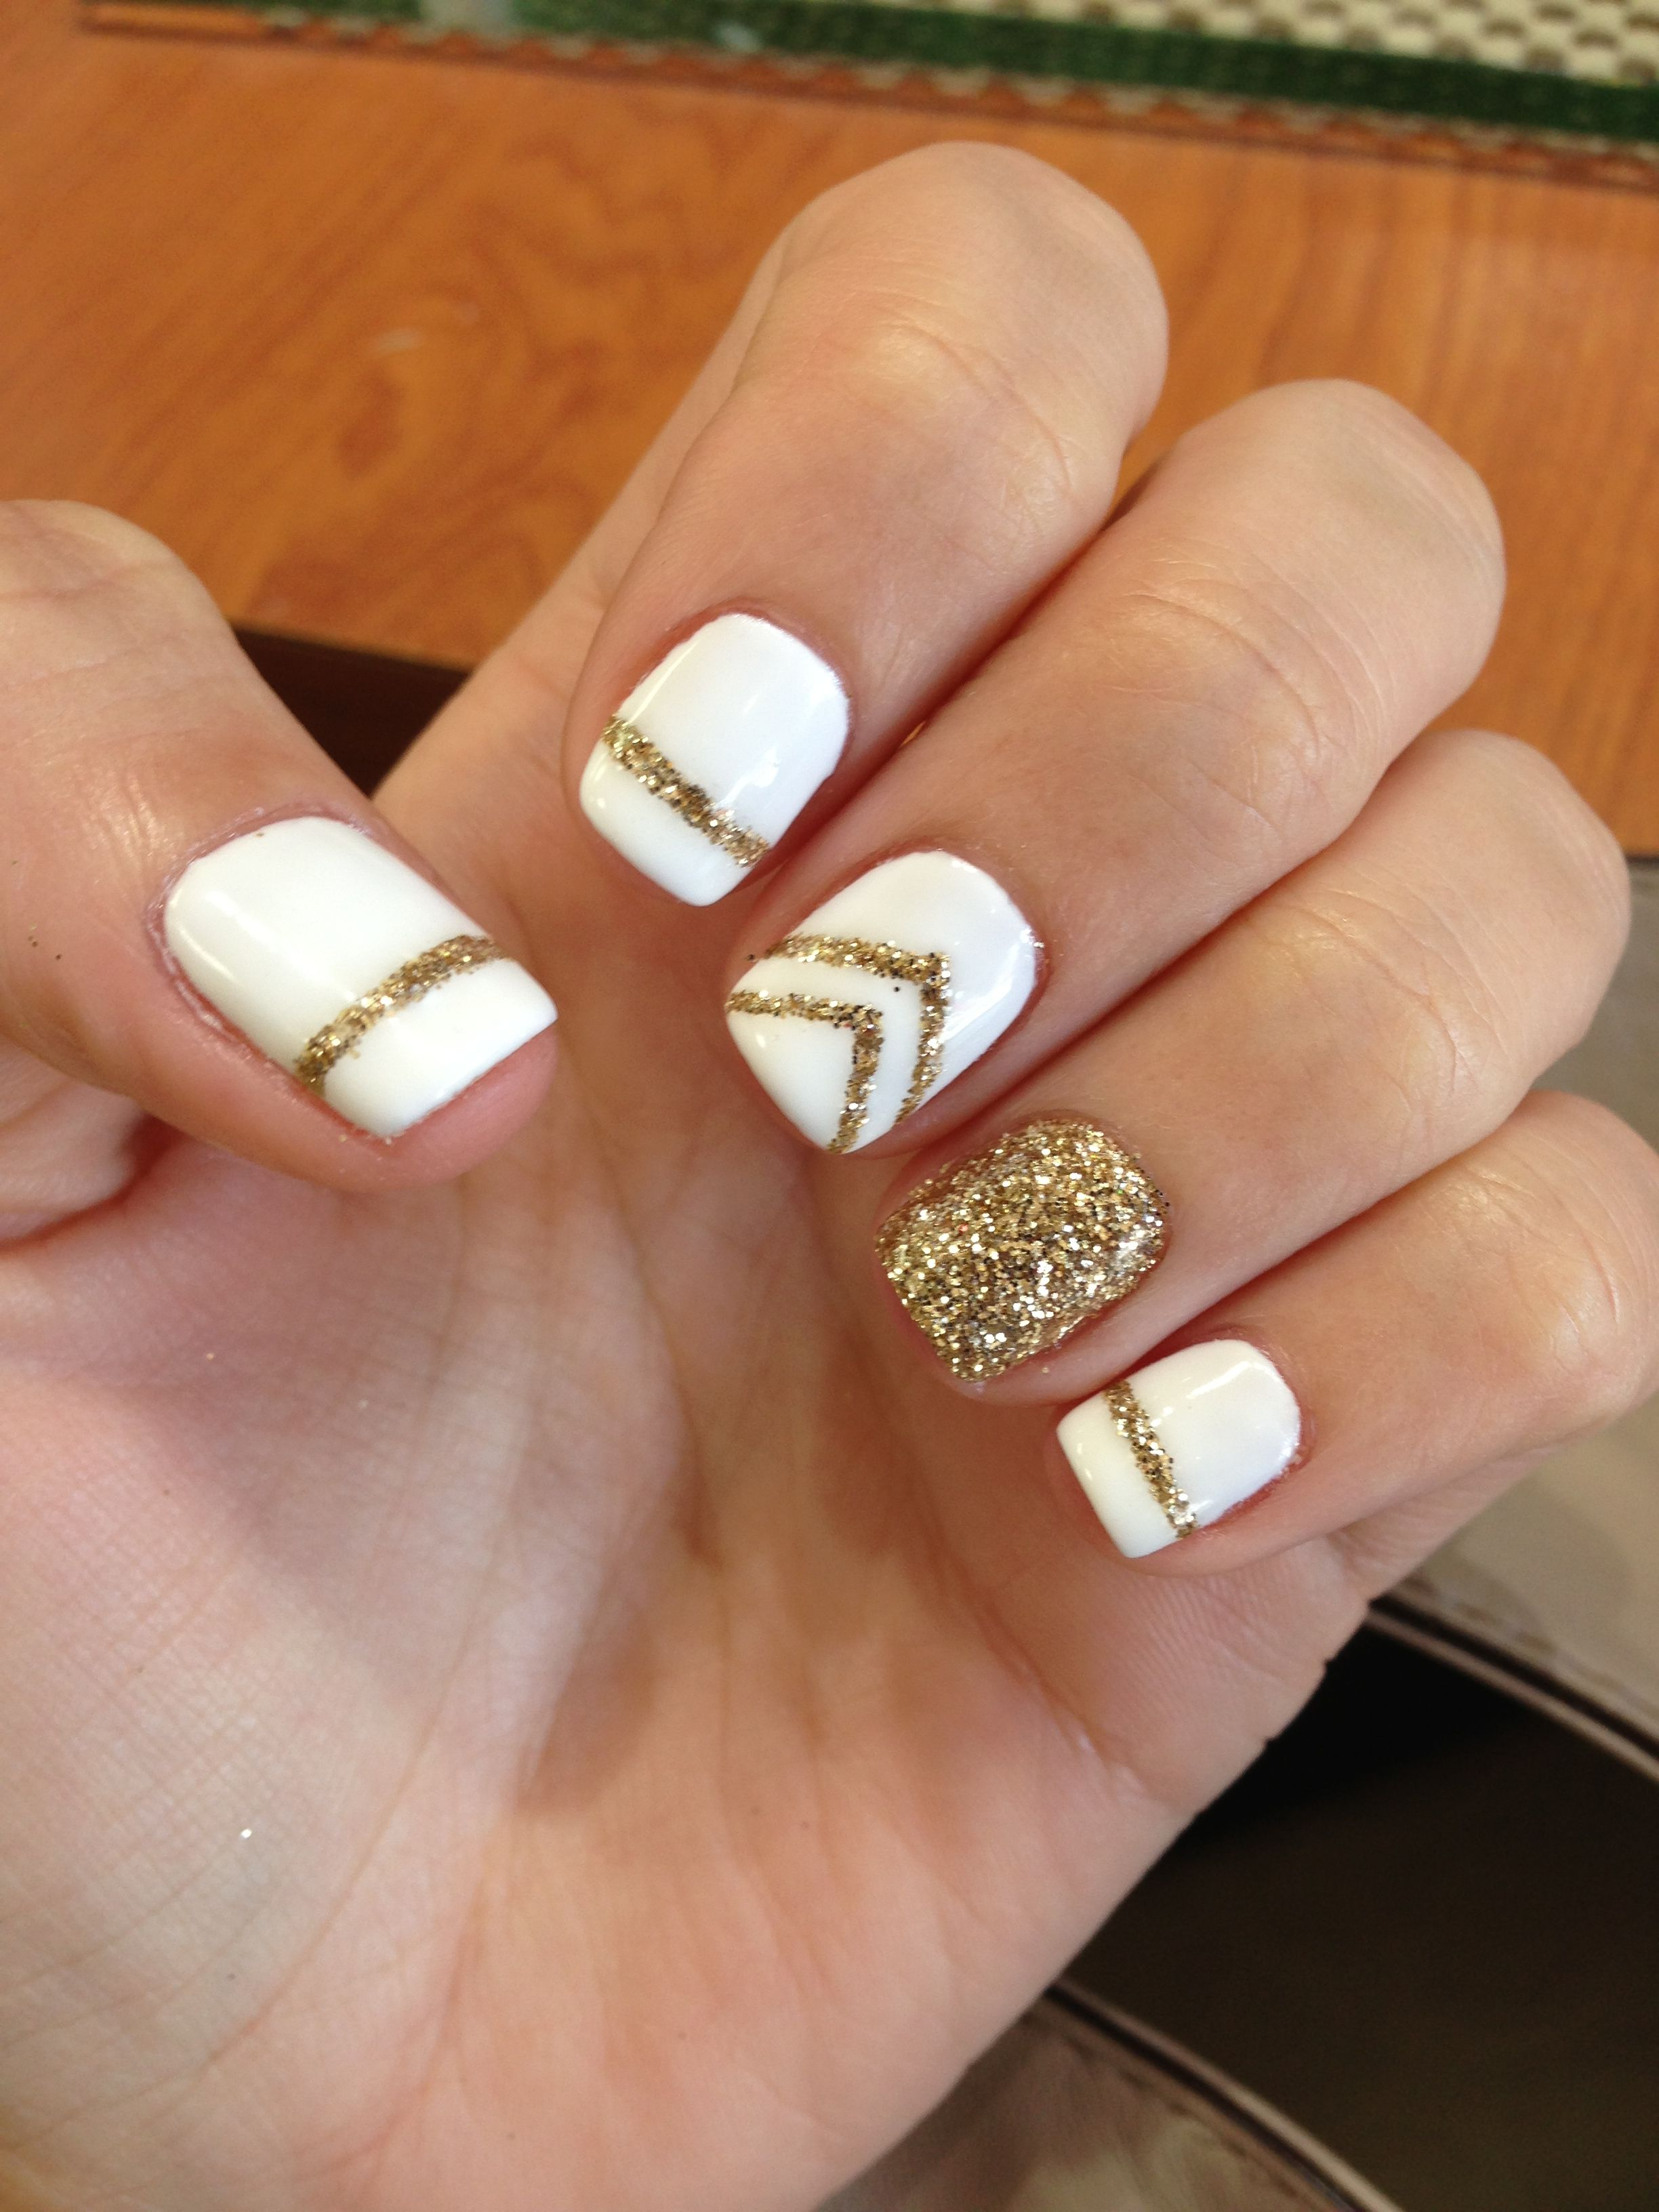 Pin By Maurices On Nails Gold Gel Nails Glitter Gel Nails Gel Manicure